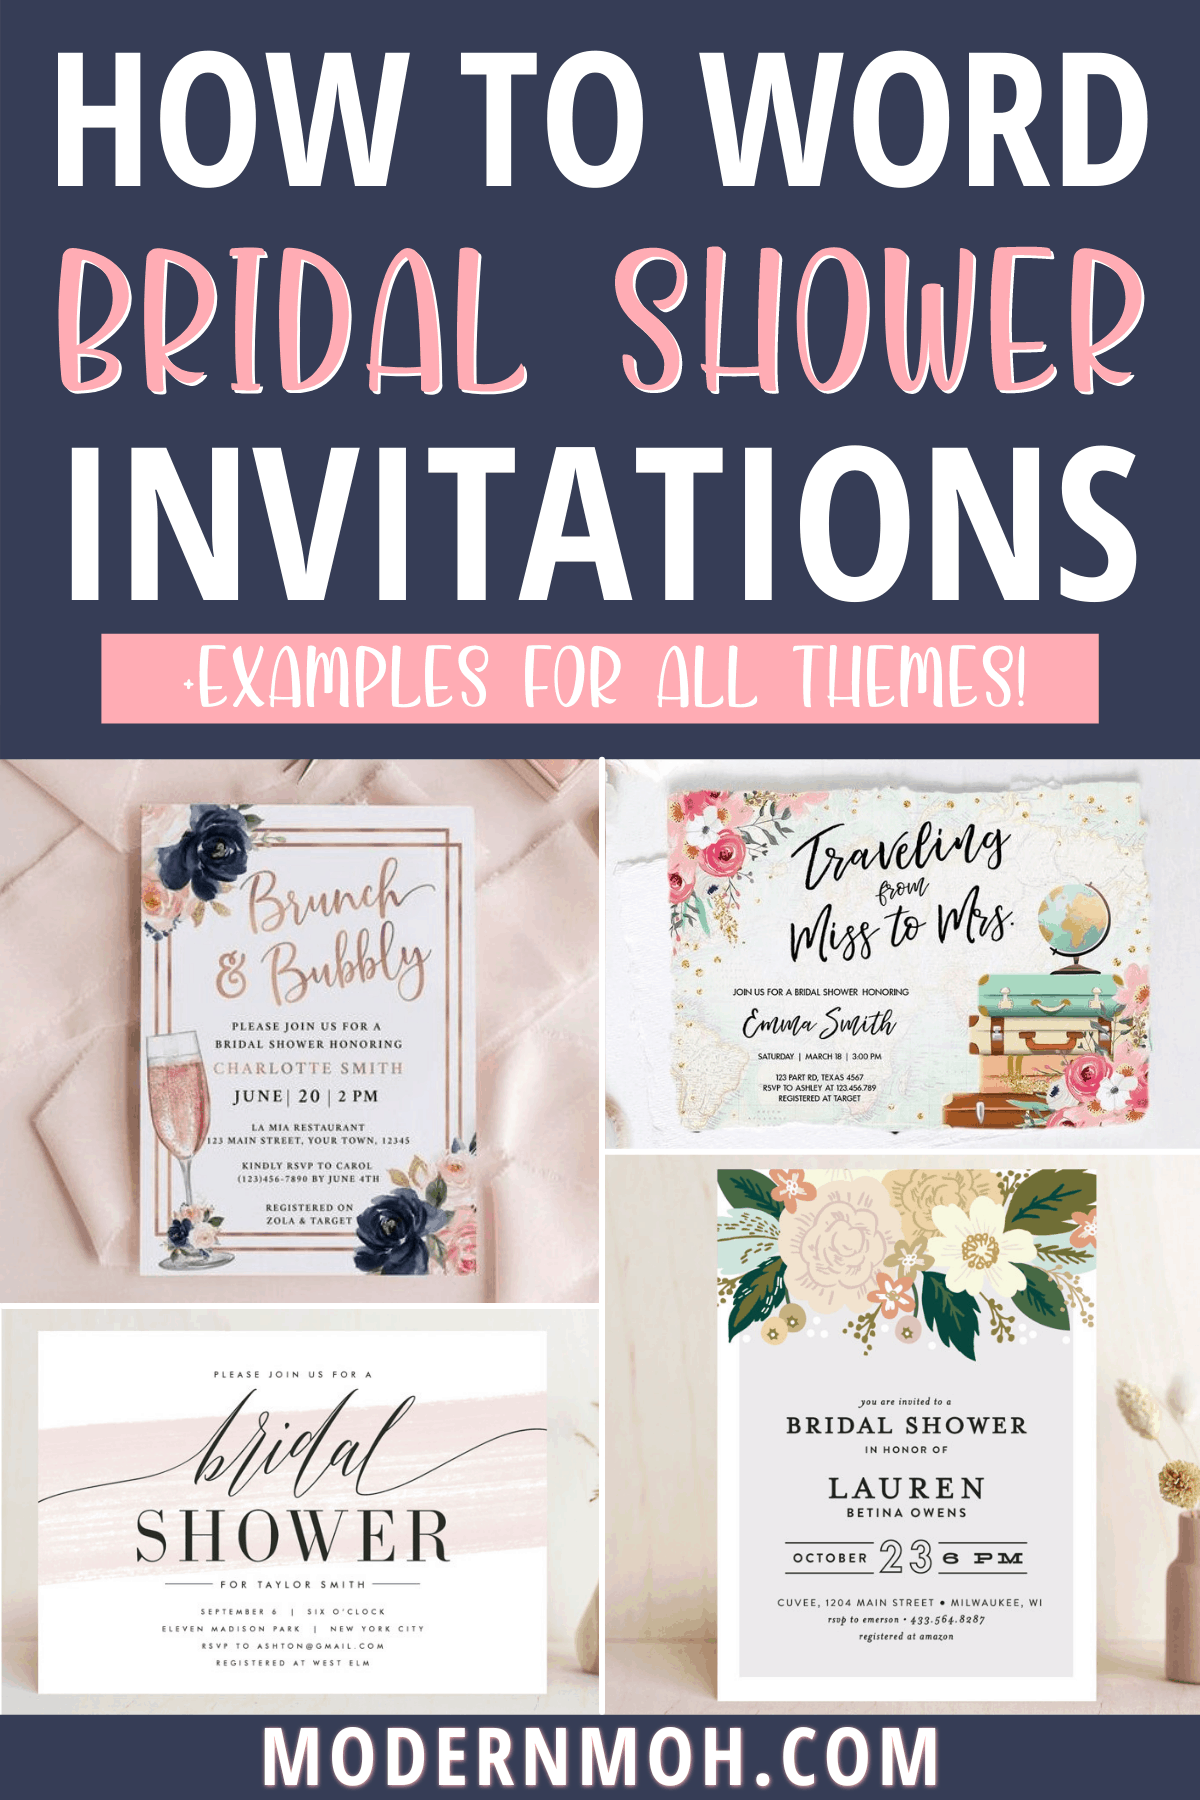 Braidal Shower Invitation Wording: Must-Have Details and Examples